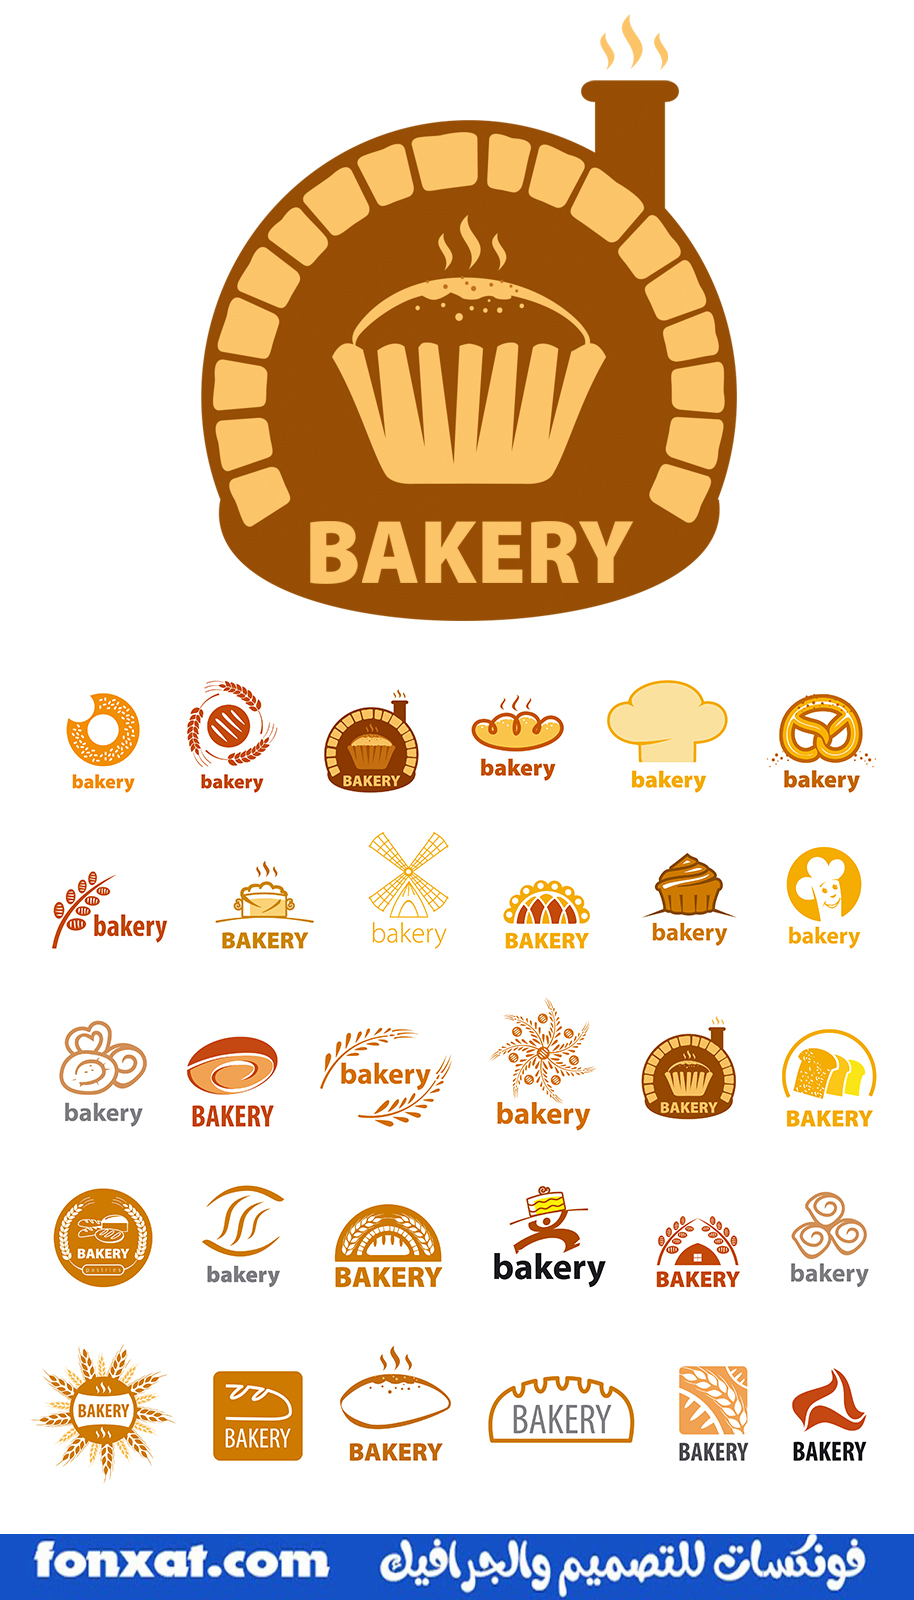 Open source vector logo psd and eps bundle for the bakery industry